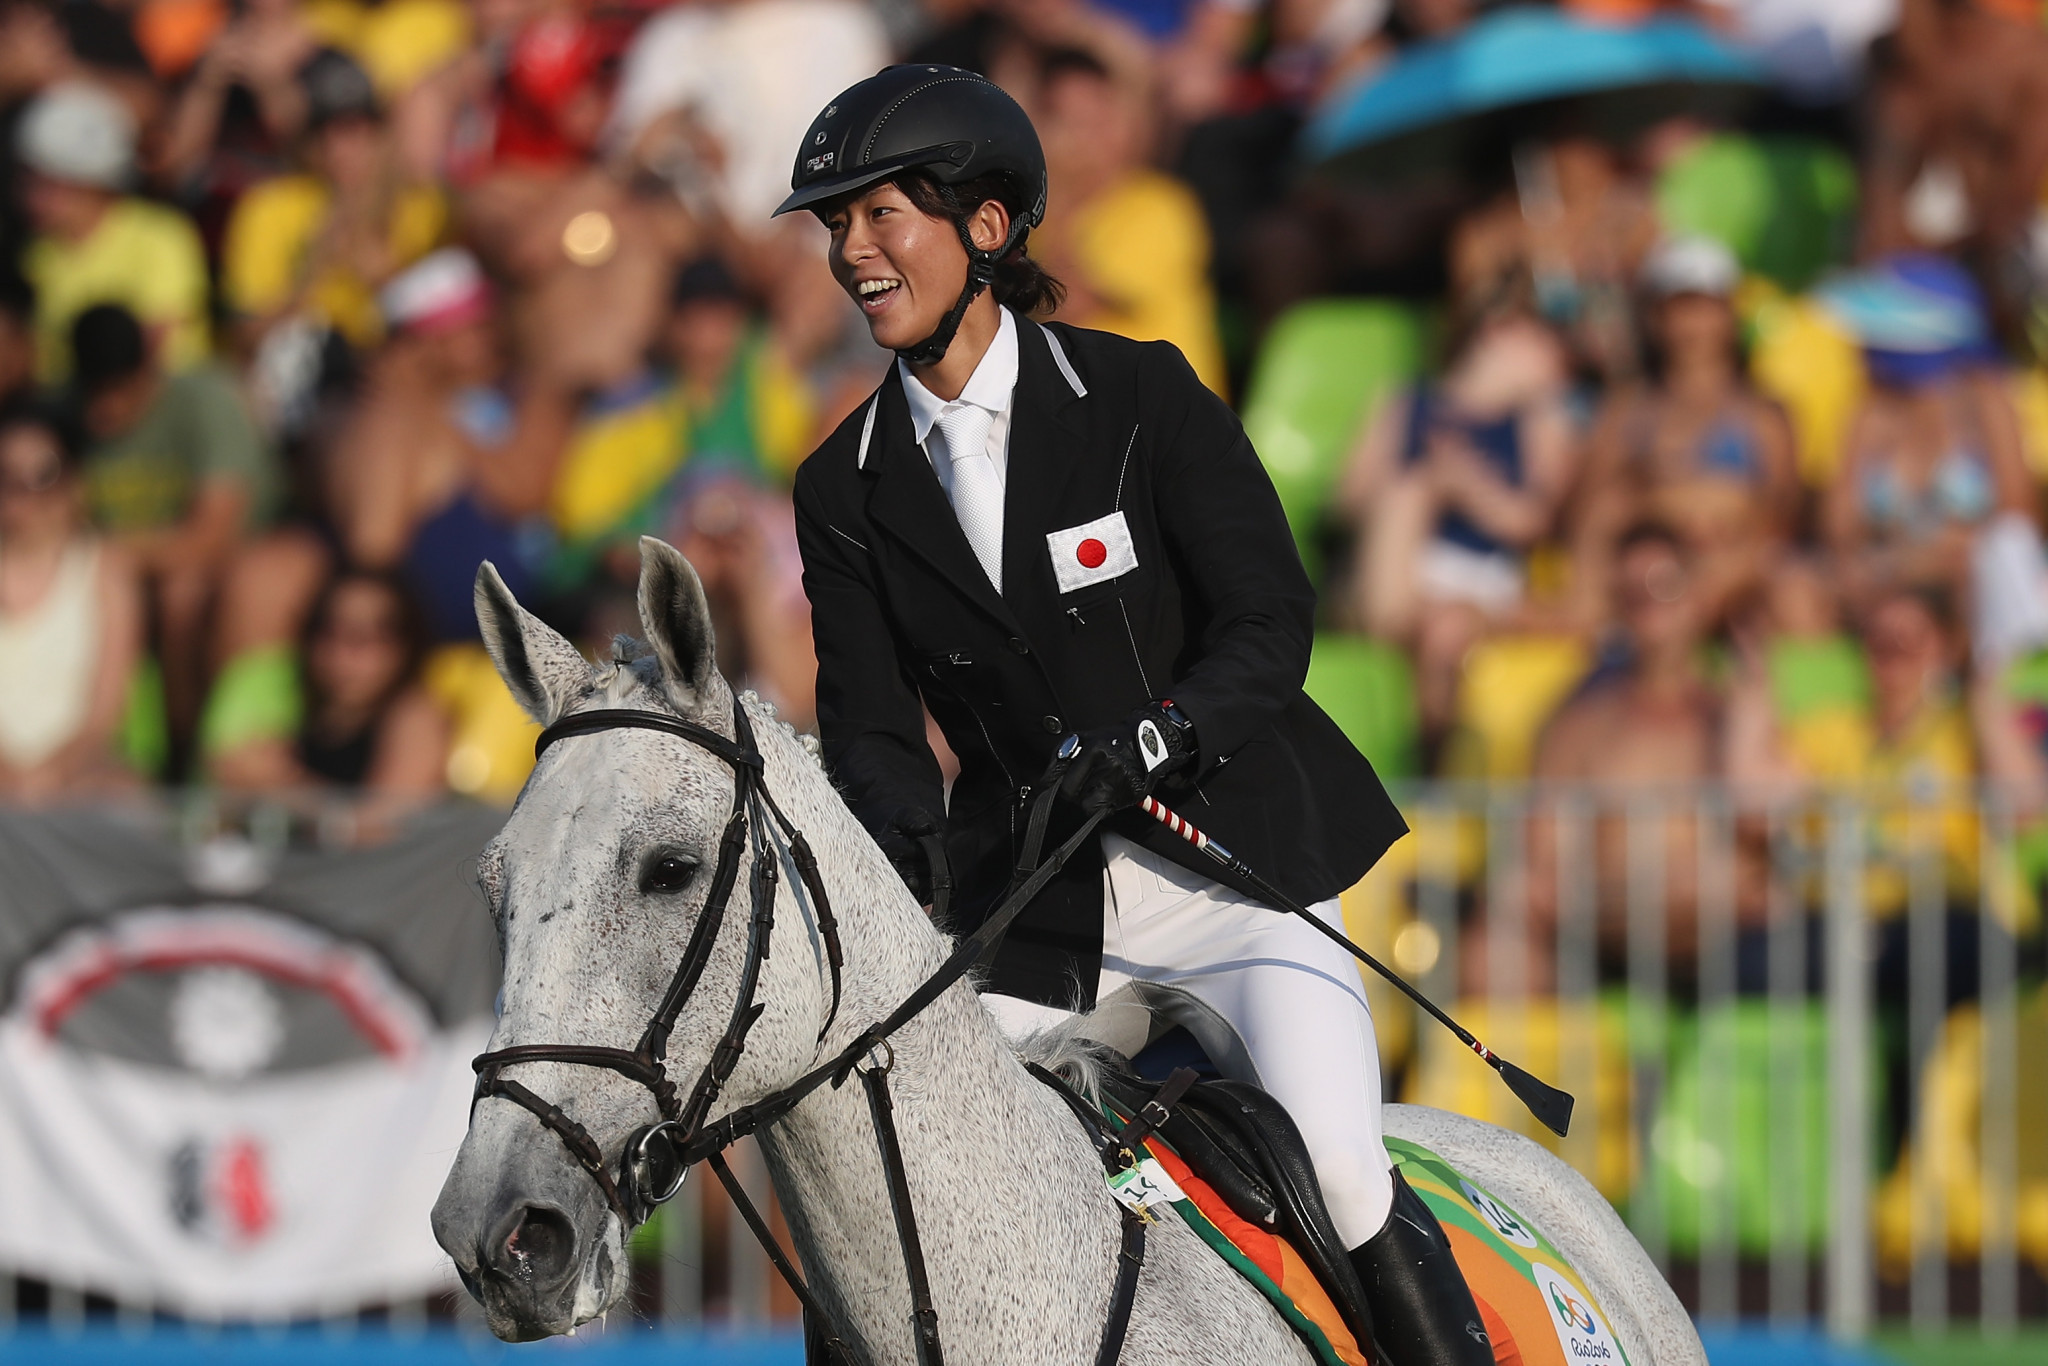 Natsumi Tomonaga was the top qualifier as women's action began at the Modern Pentathlon World Cup in Cairo ©Getty Images